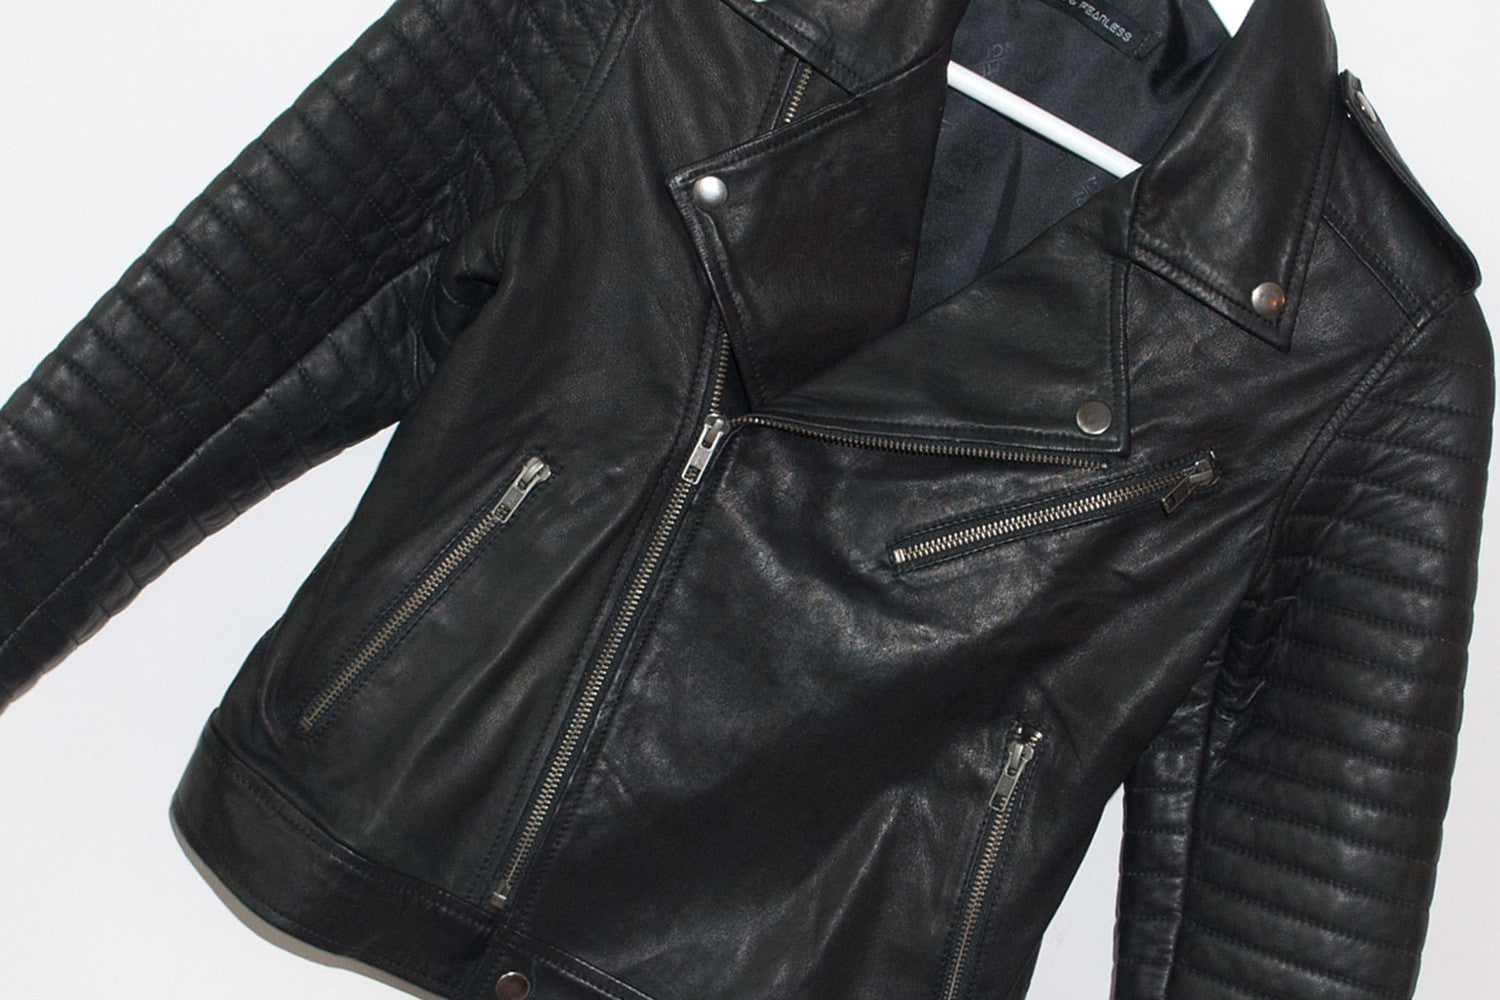 Leather jacket no sleeves